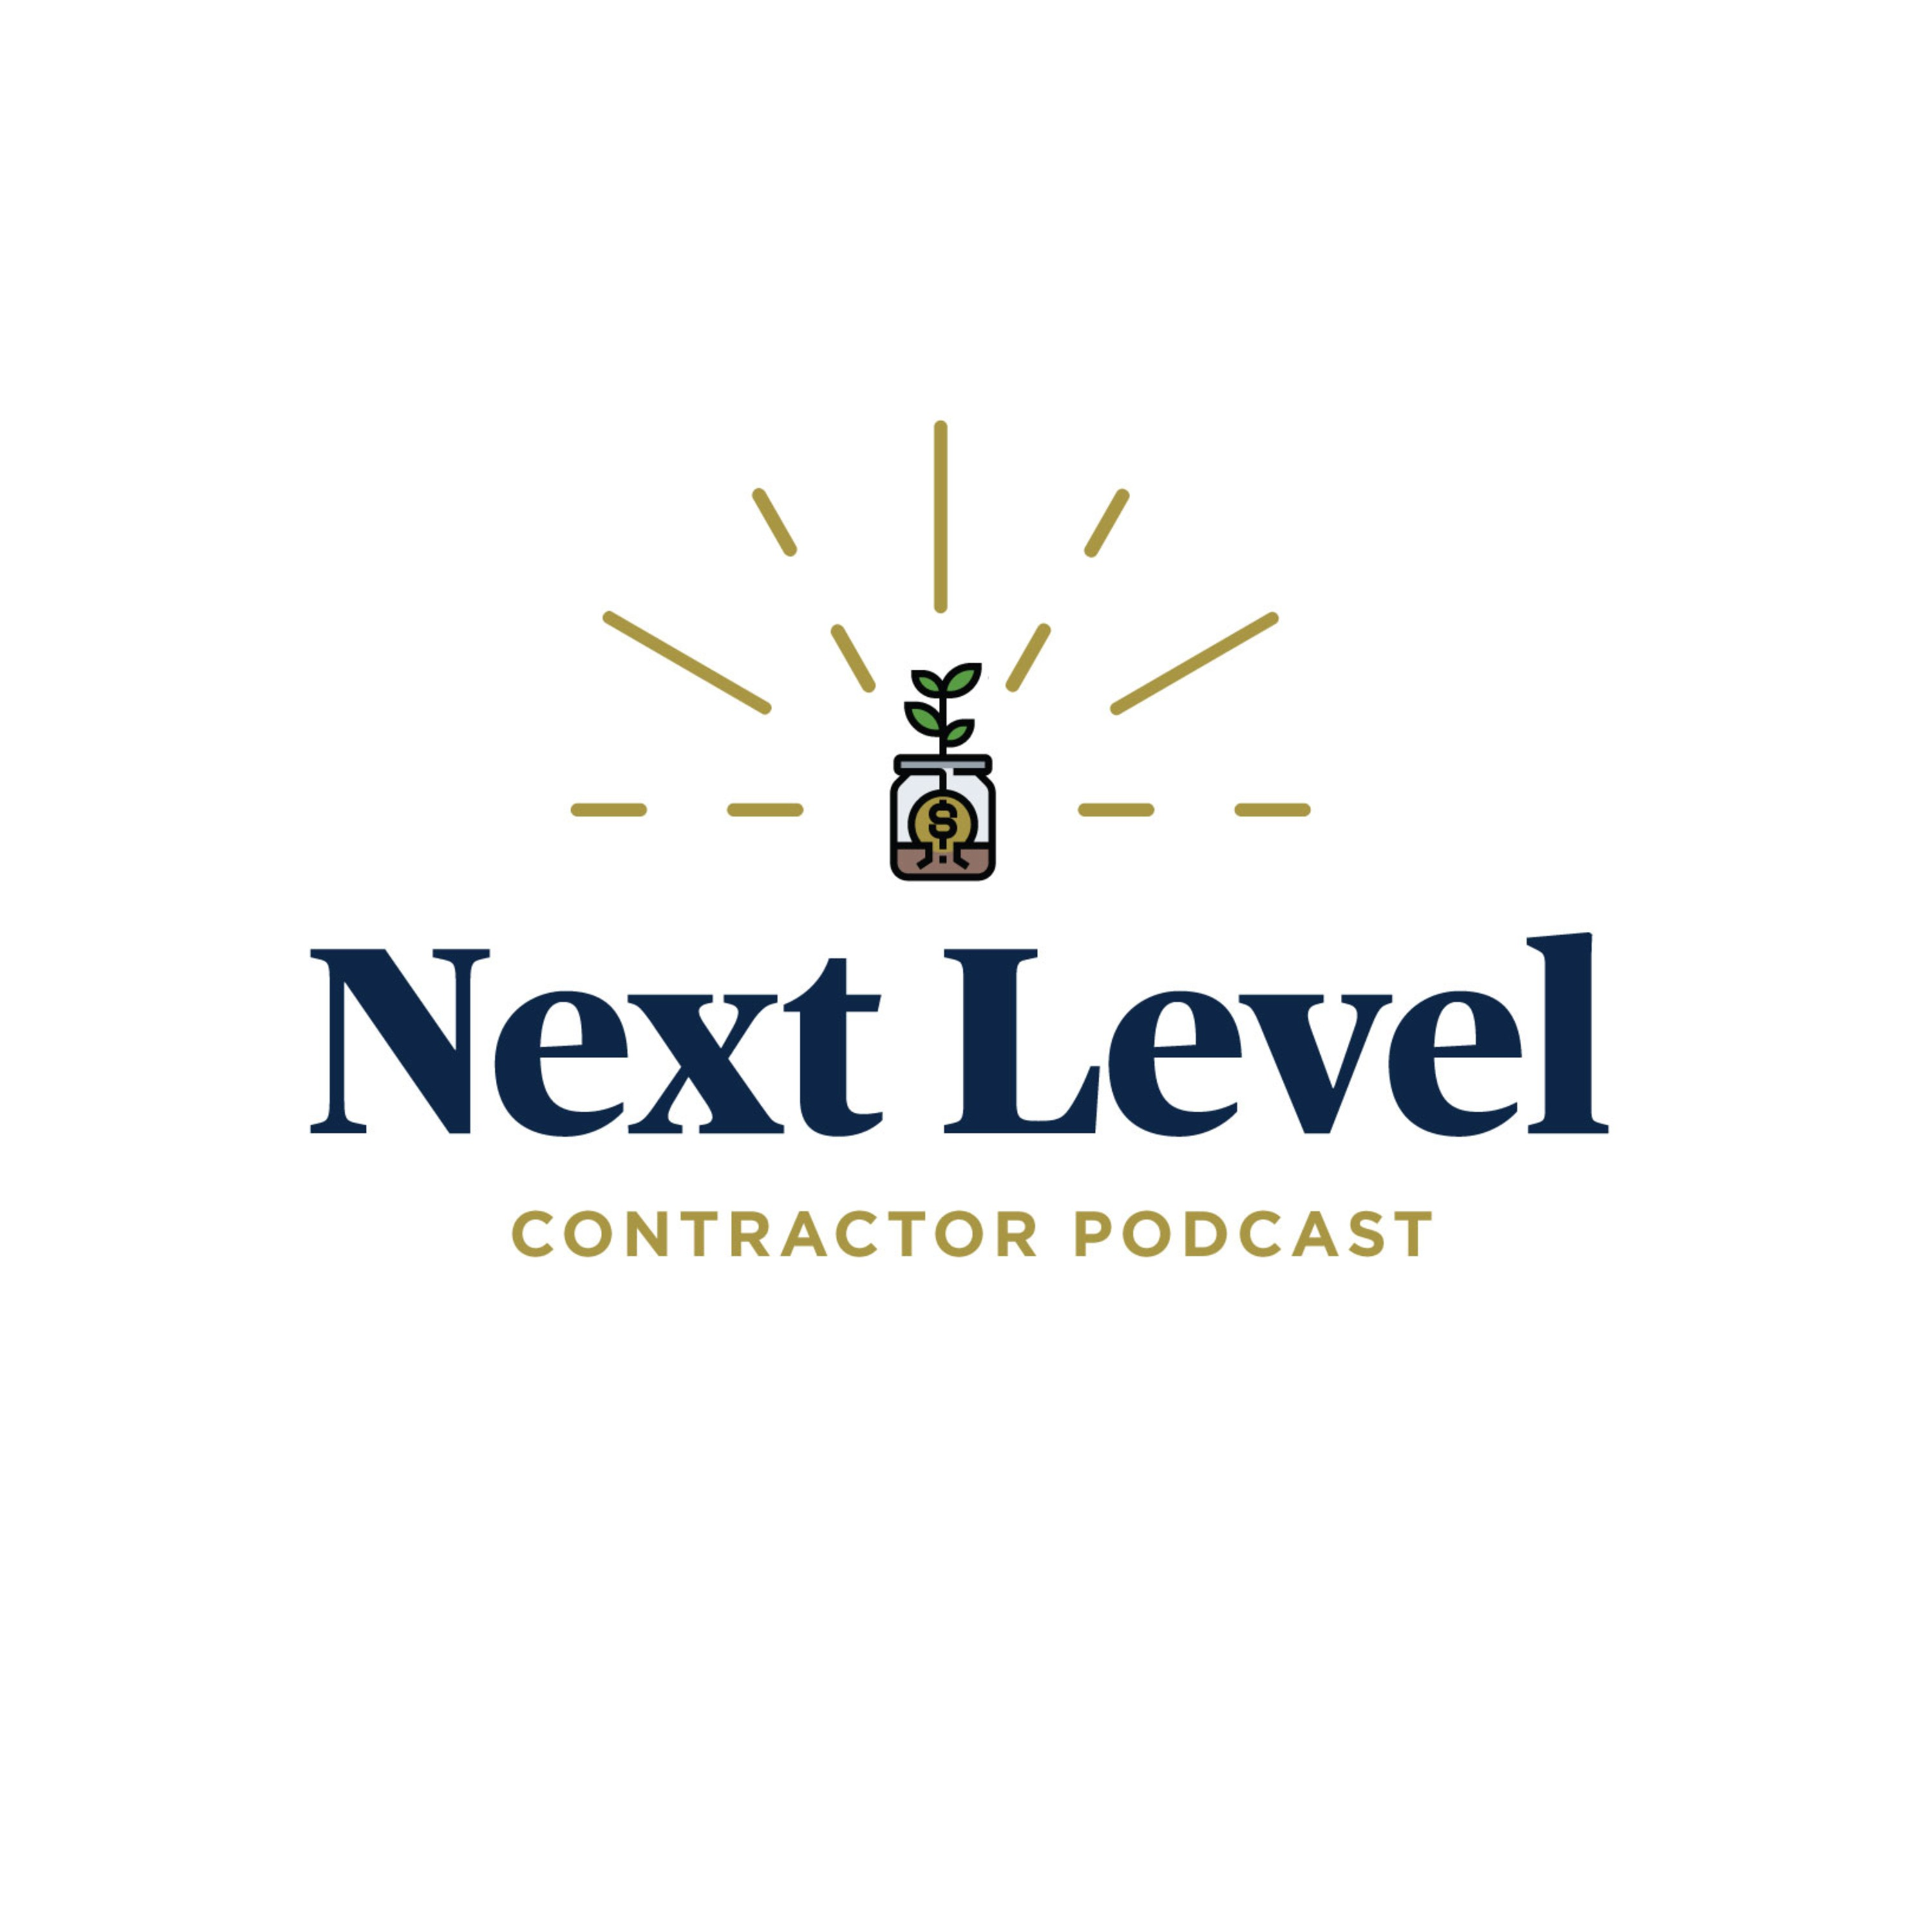 Top Business Podcasts 2020.5 Important Keys For Seo In 2020 Nick Leroy Seoforlunch